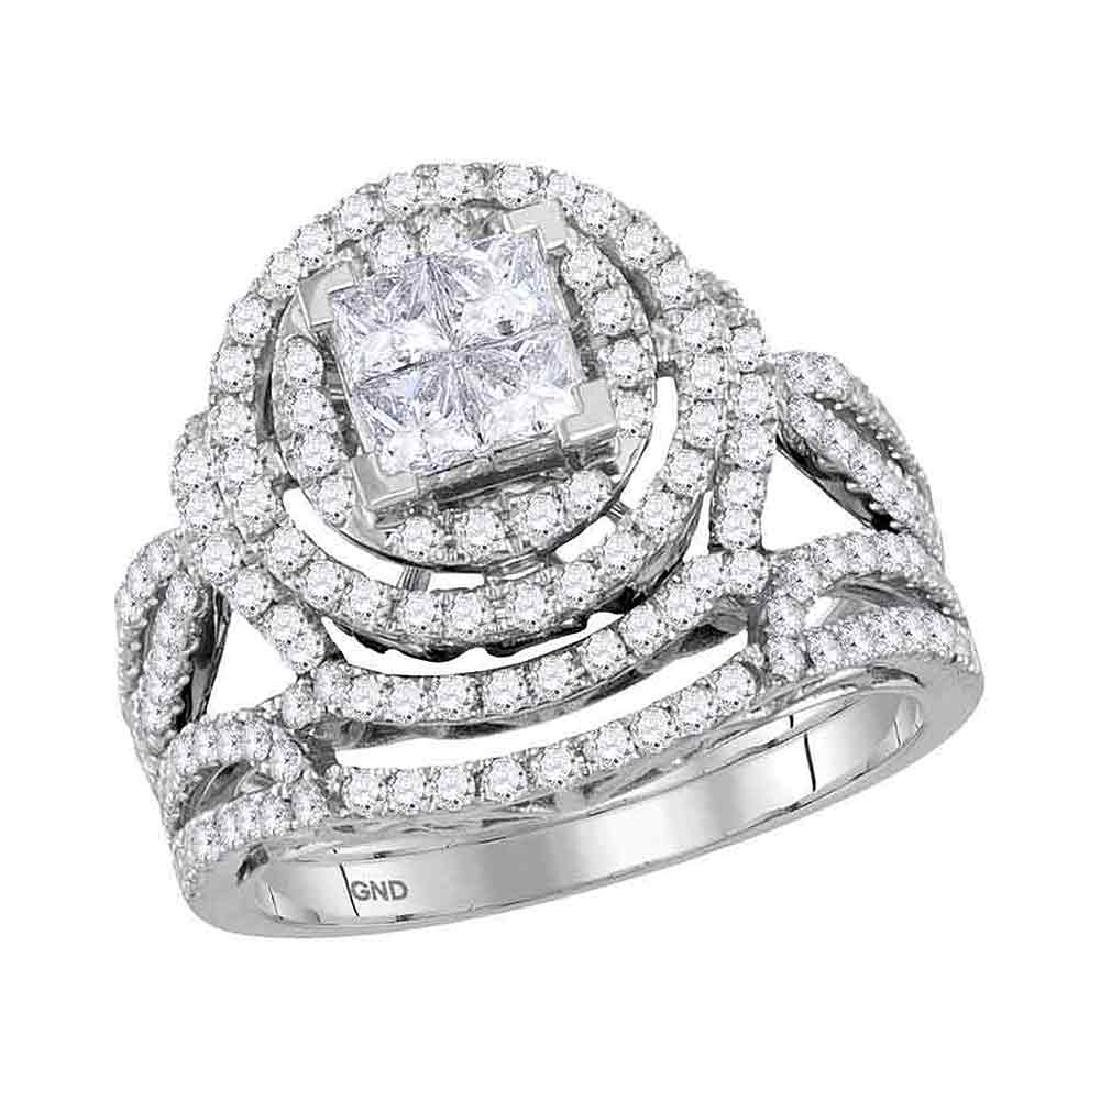 1.59 CTW Princess Diamond Bridal Engagement Ring 14KT